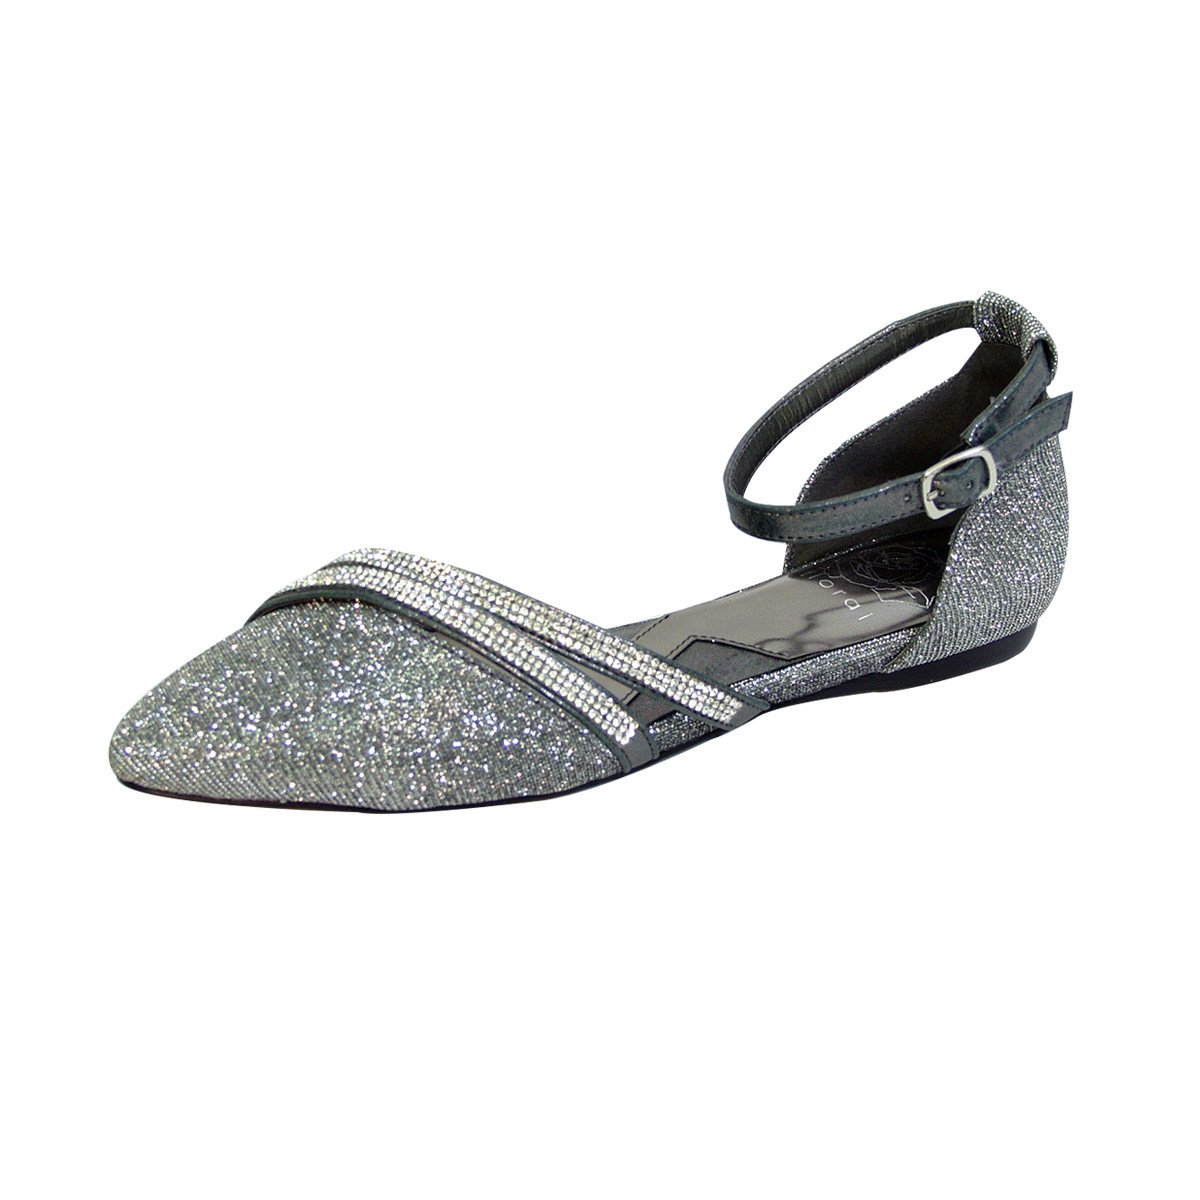 Fuzzy Hallie Women Wide Width Open Shank Pointed Toe Buckle Ankle Strap Flats (Size & Measurement) B0773S9X9V 7 D|Pewter